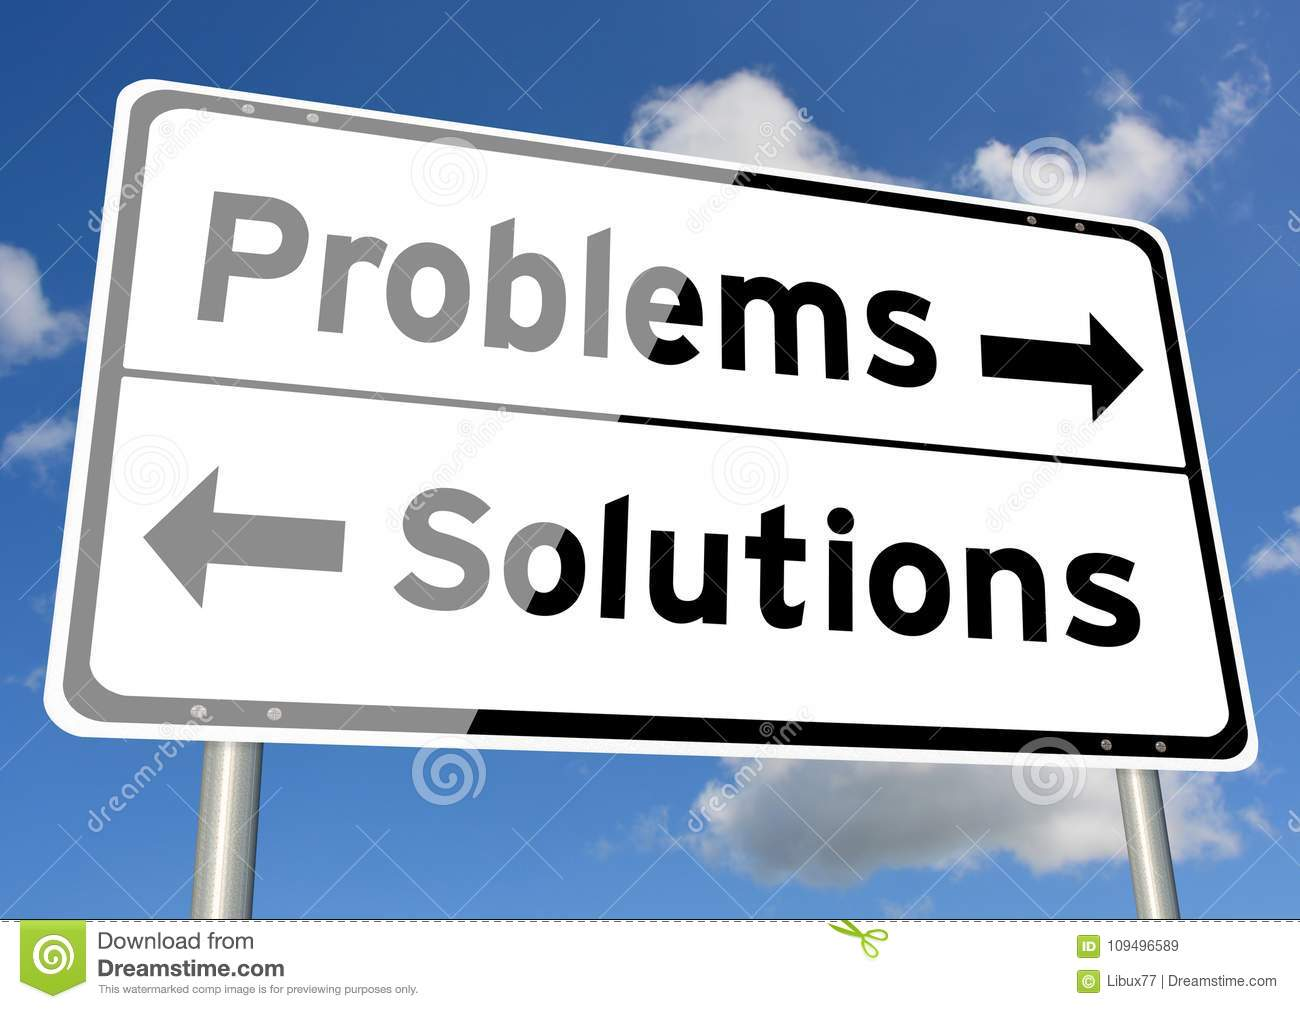 Problems Solutions choice signpost concept sky